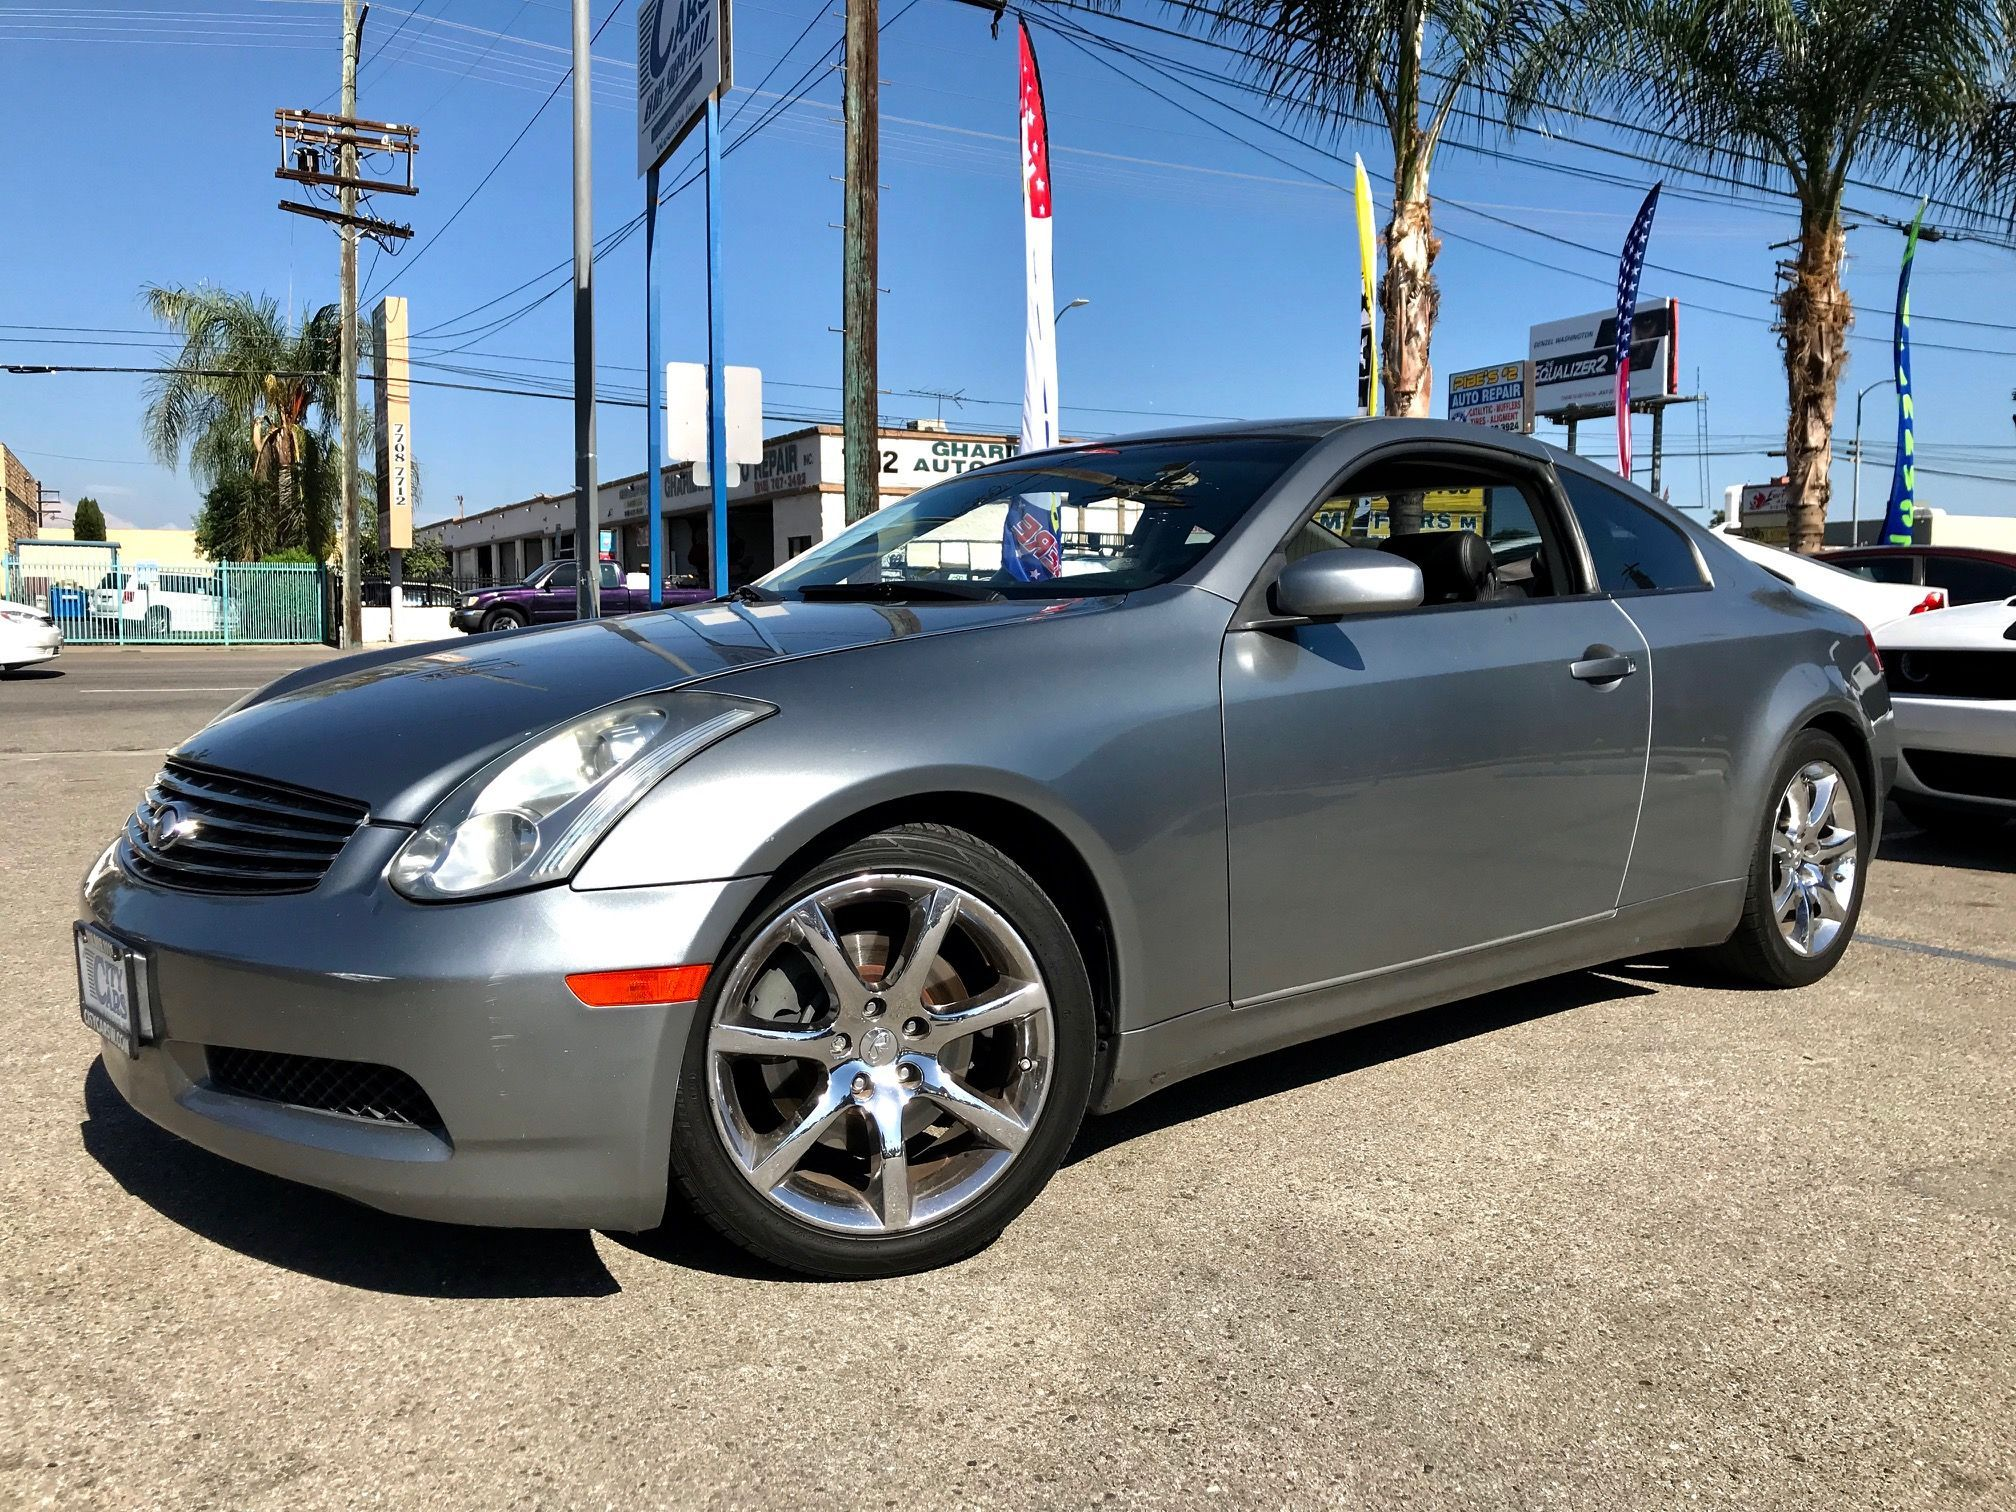 Used 2006 Infiniti G35 Coupe Convertible At City Cars Warehouse Inc